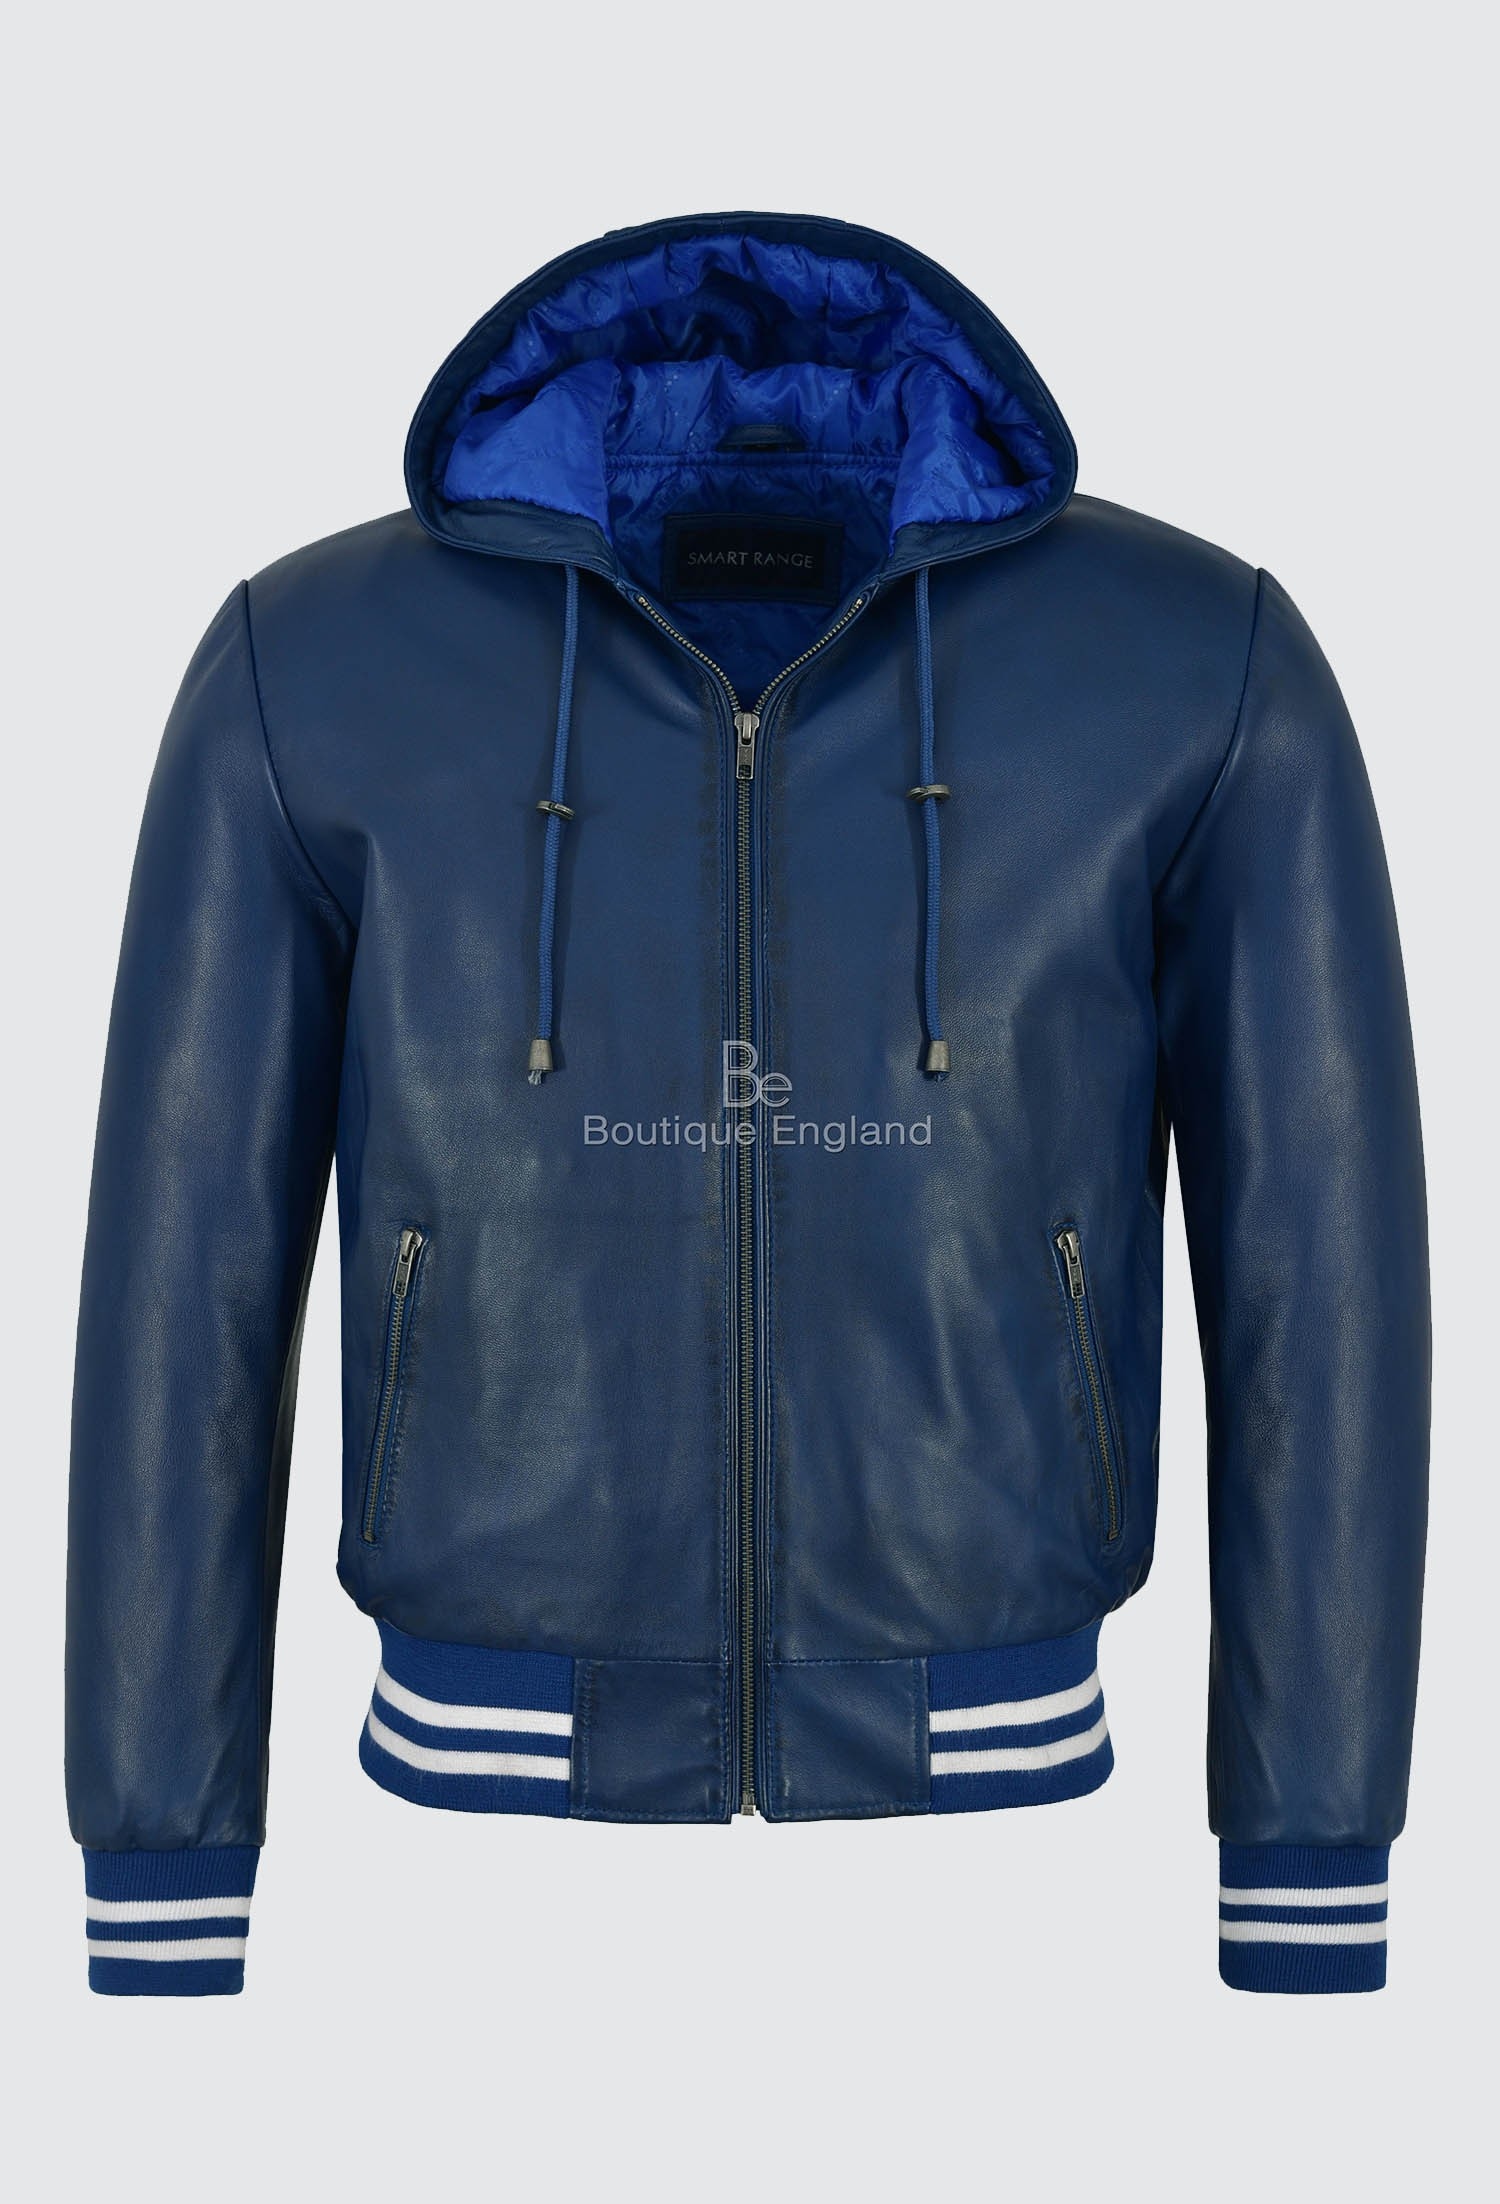 Men/'s Blue Classic Hooded Baseball Bomber Style Real Napa Leather Jacket Coat